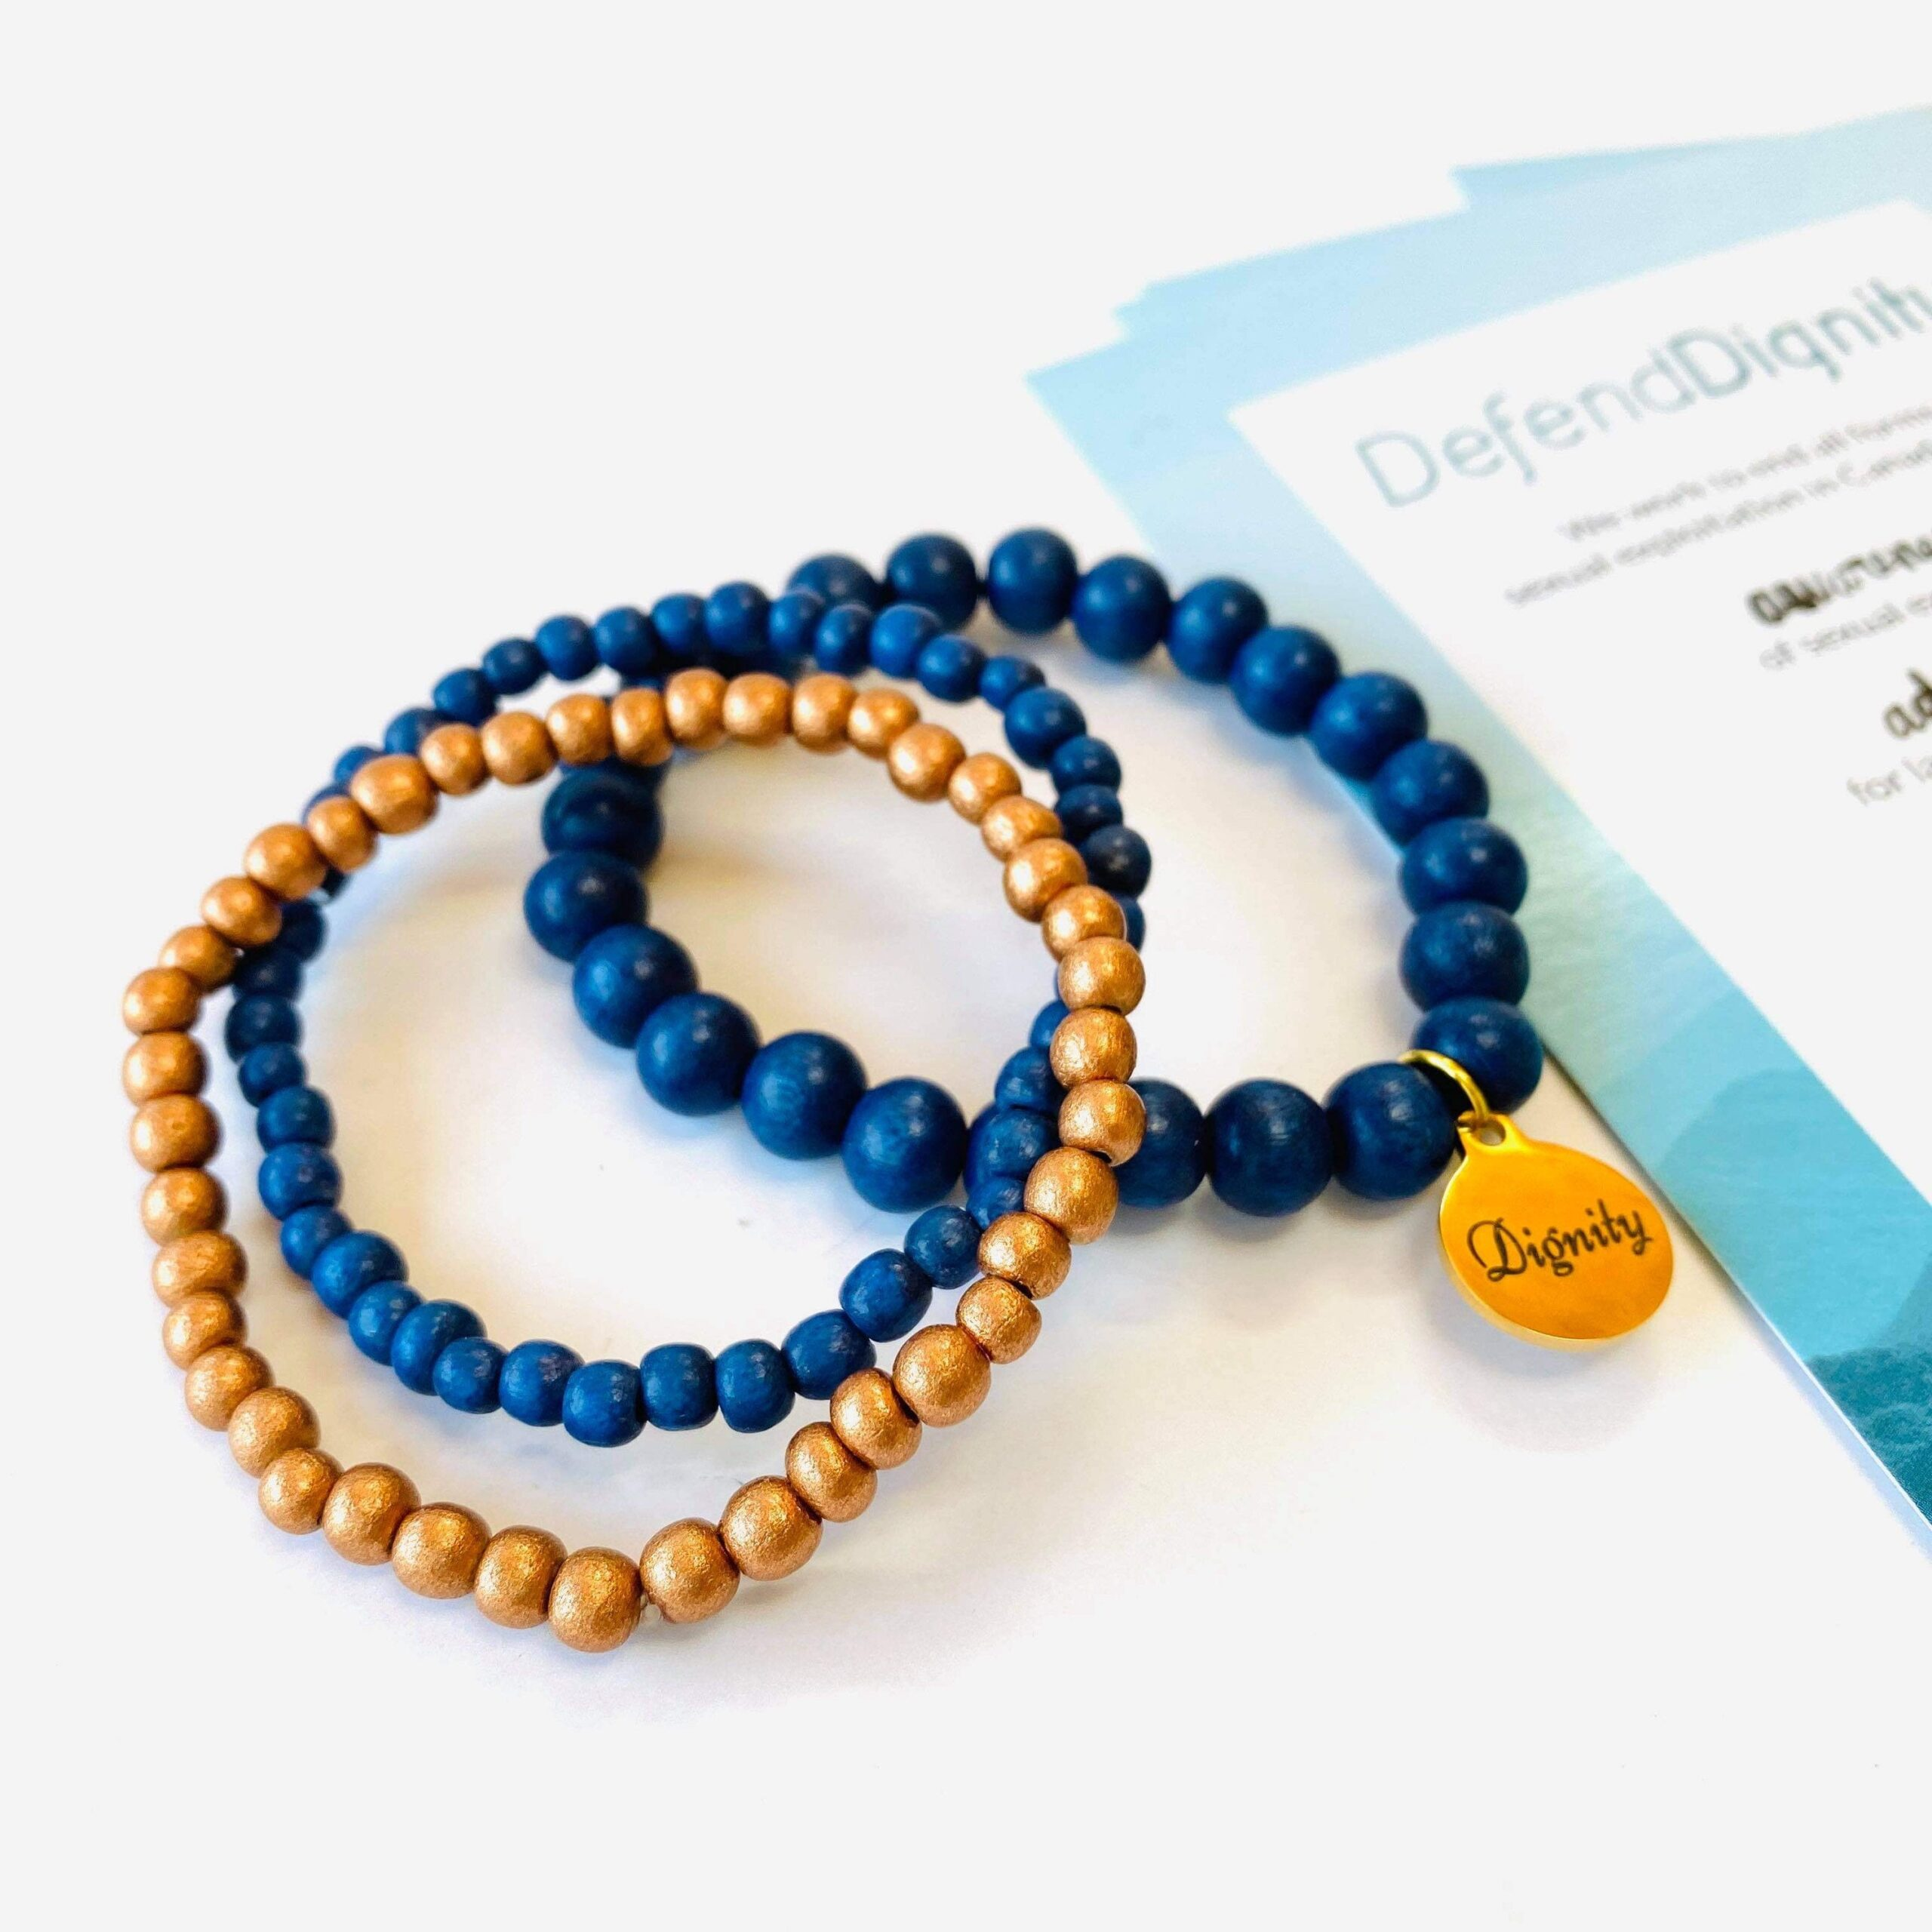 https://www.redeemedwithpurpose.com/listing/867645950/defend-dignity-bracelets-navy-copper